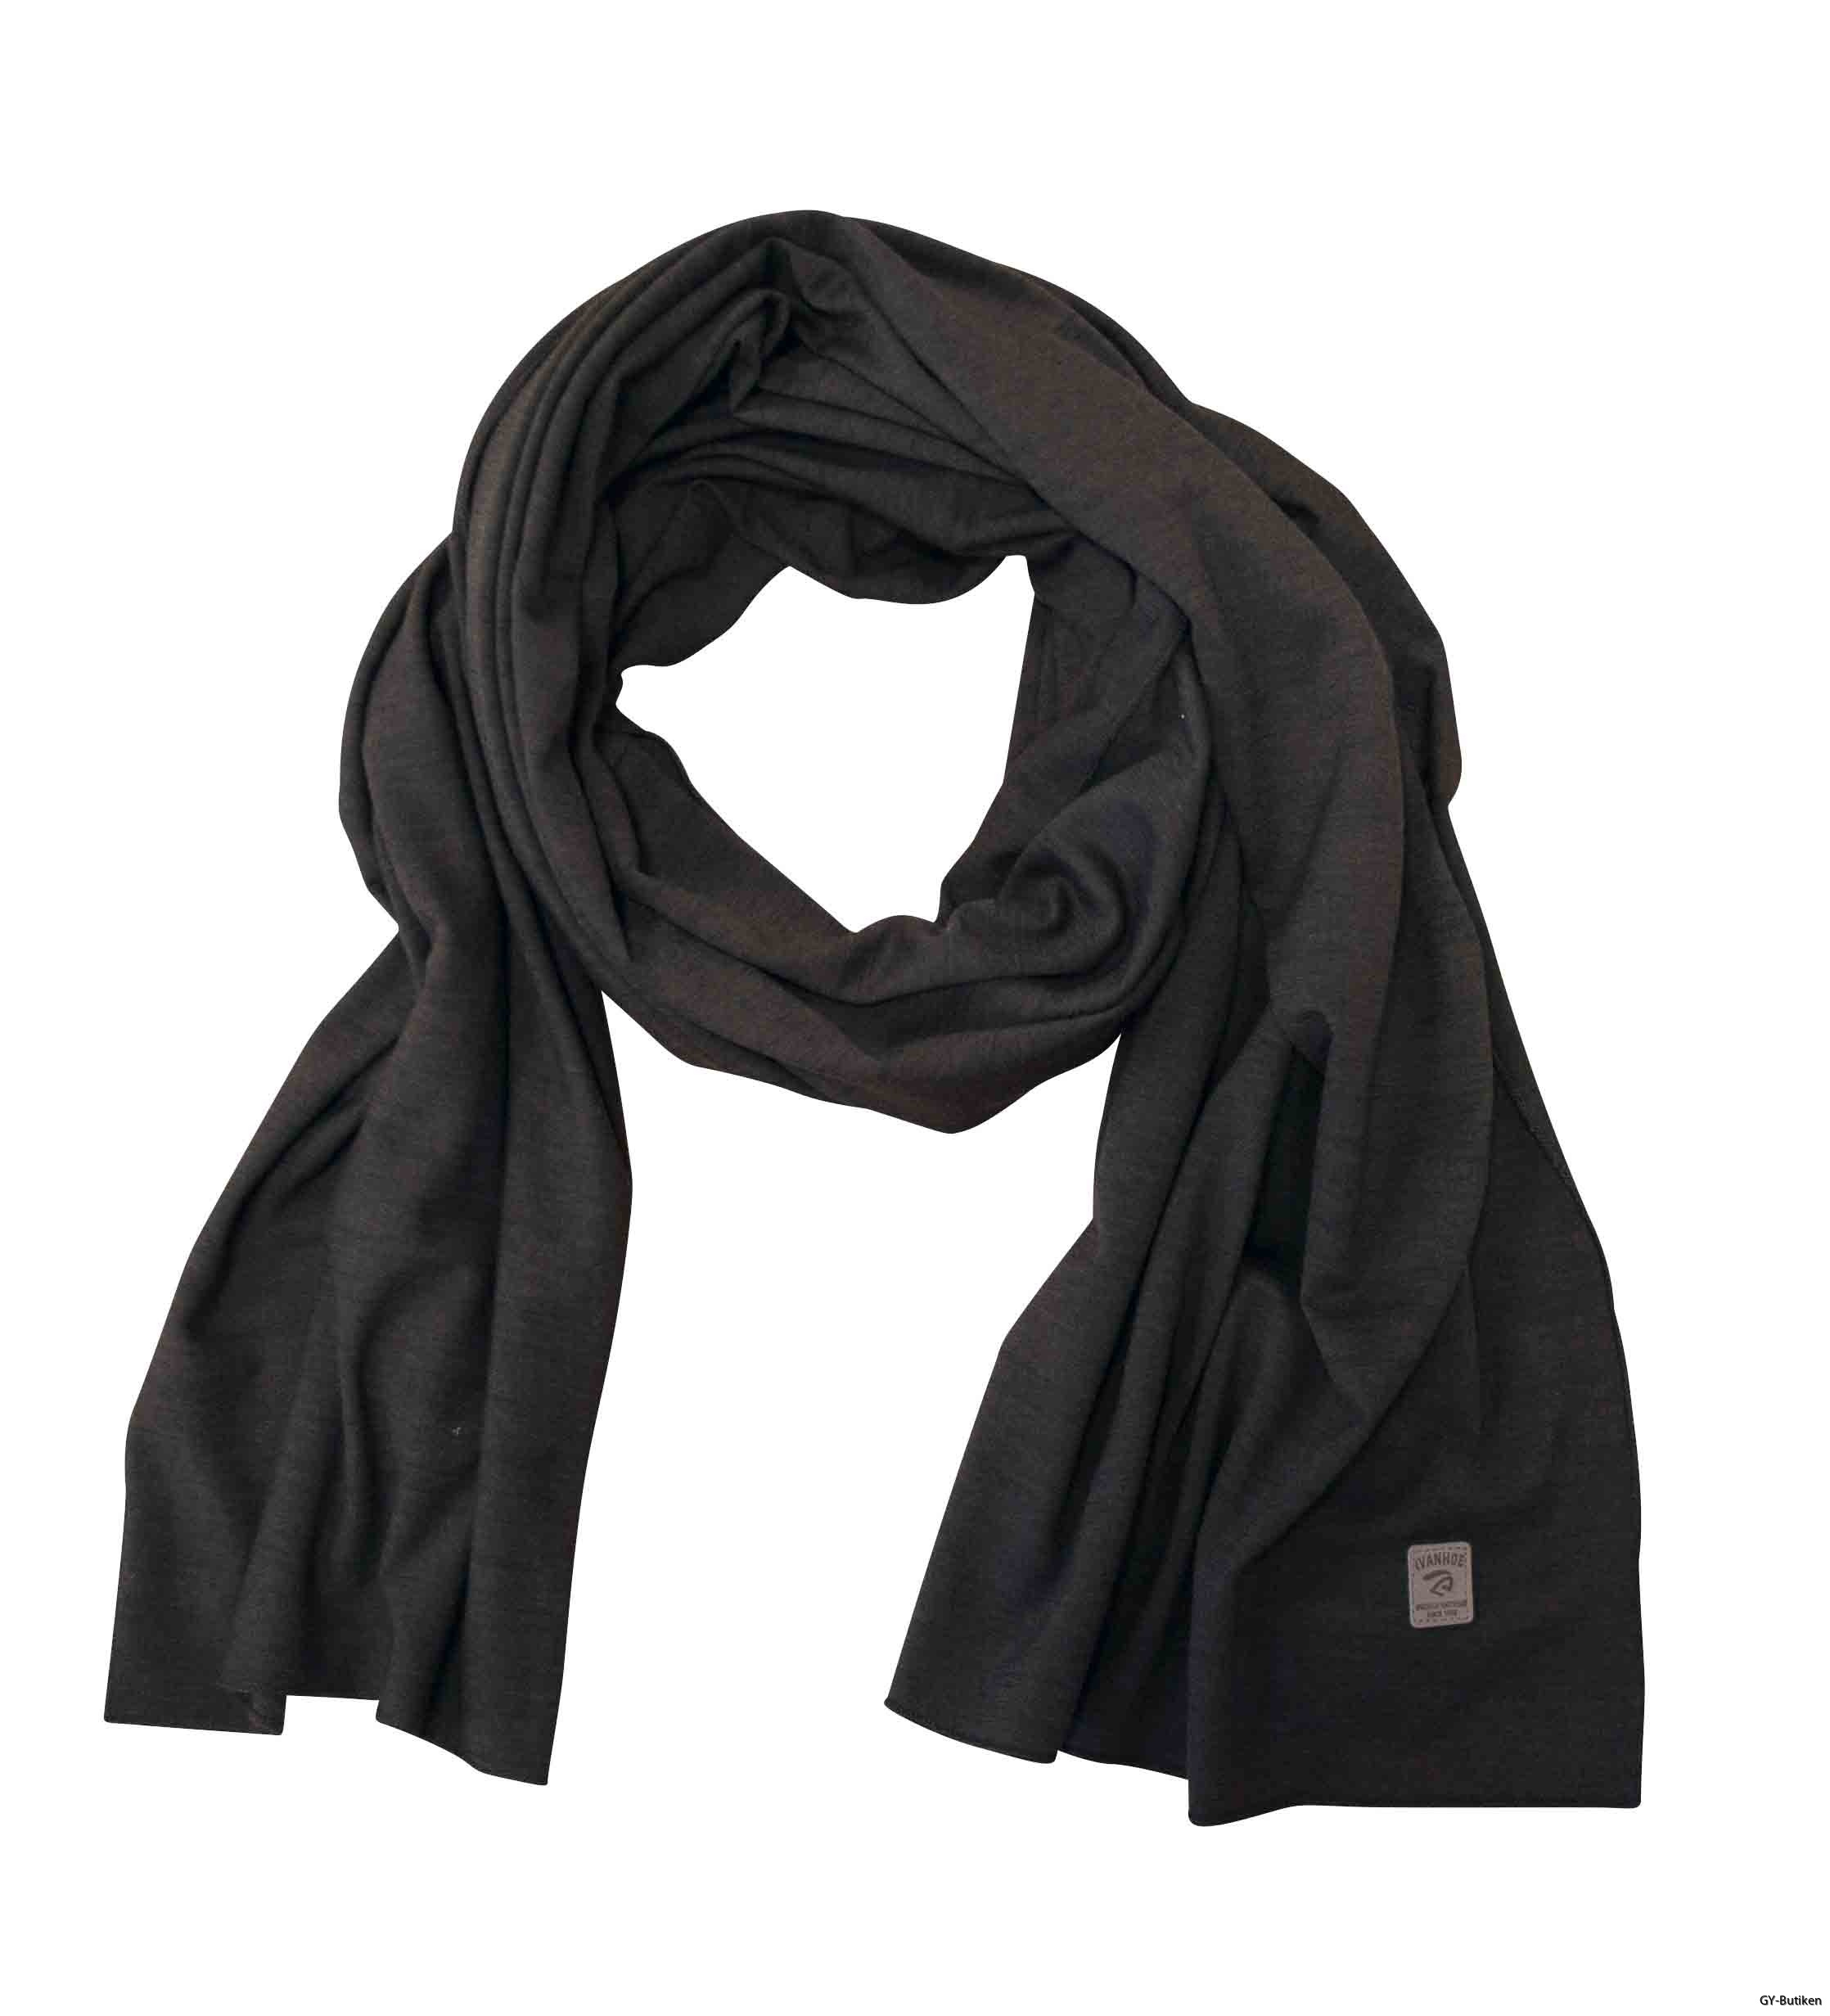 GY_Hulared_Scarf_056